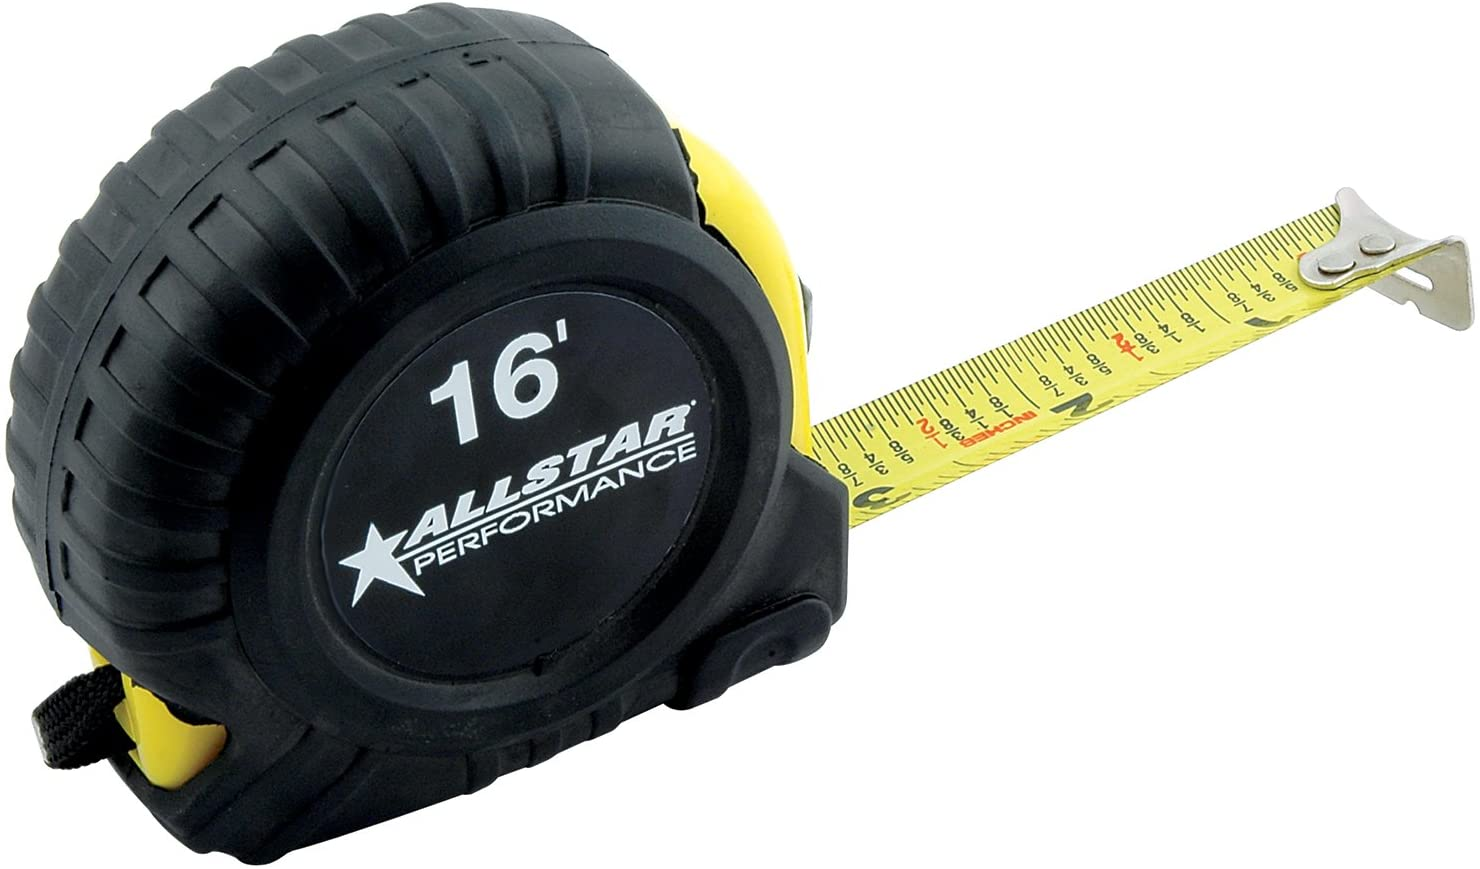 Allstar Performance ALL10675 16' Measure Tape